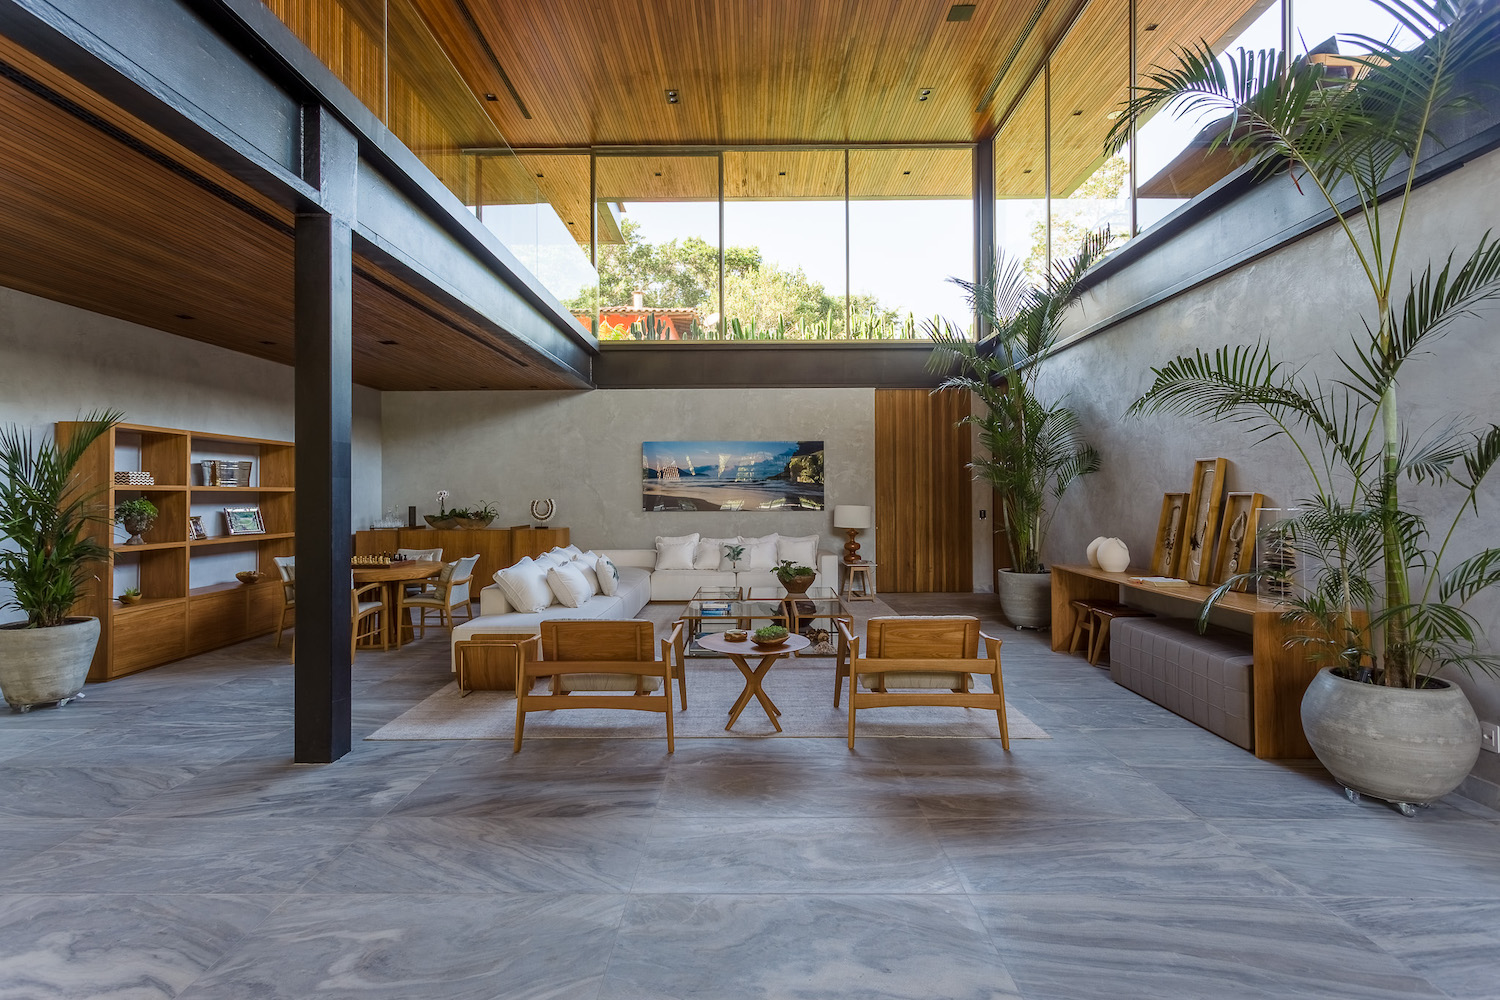 house with steel structure columns and beams